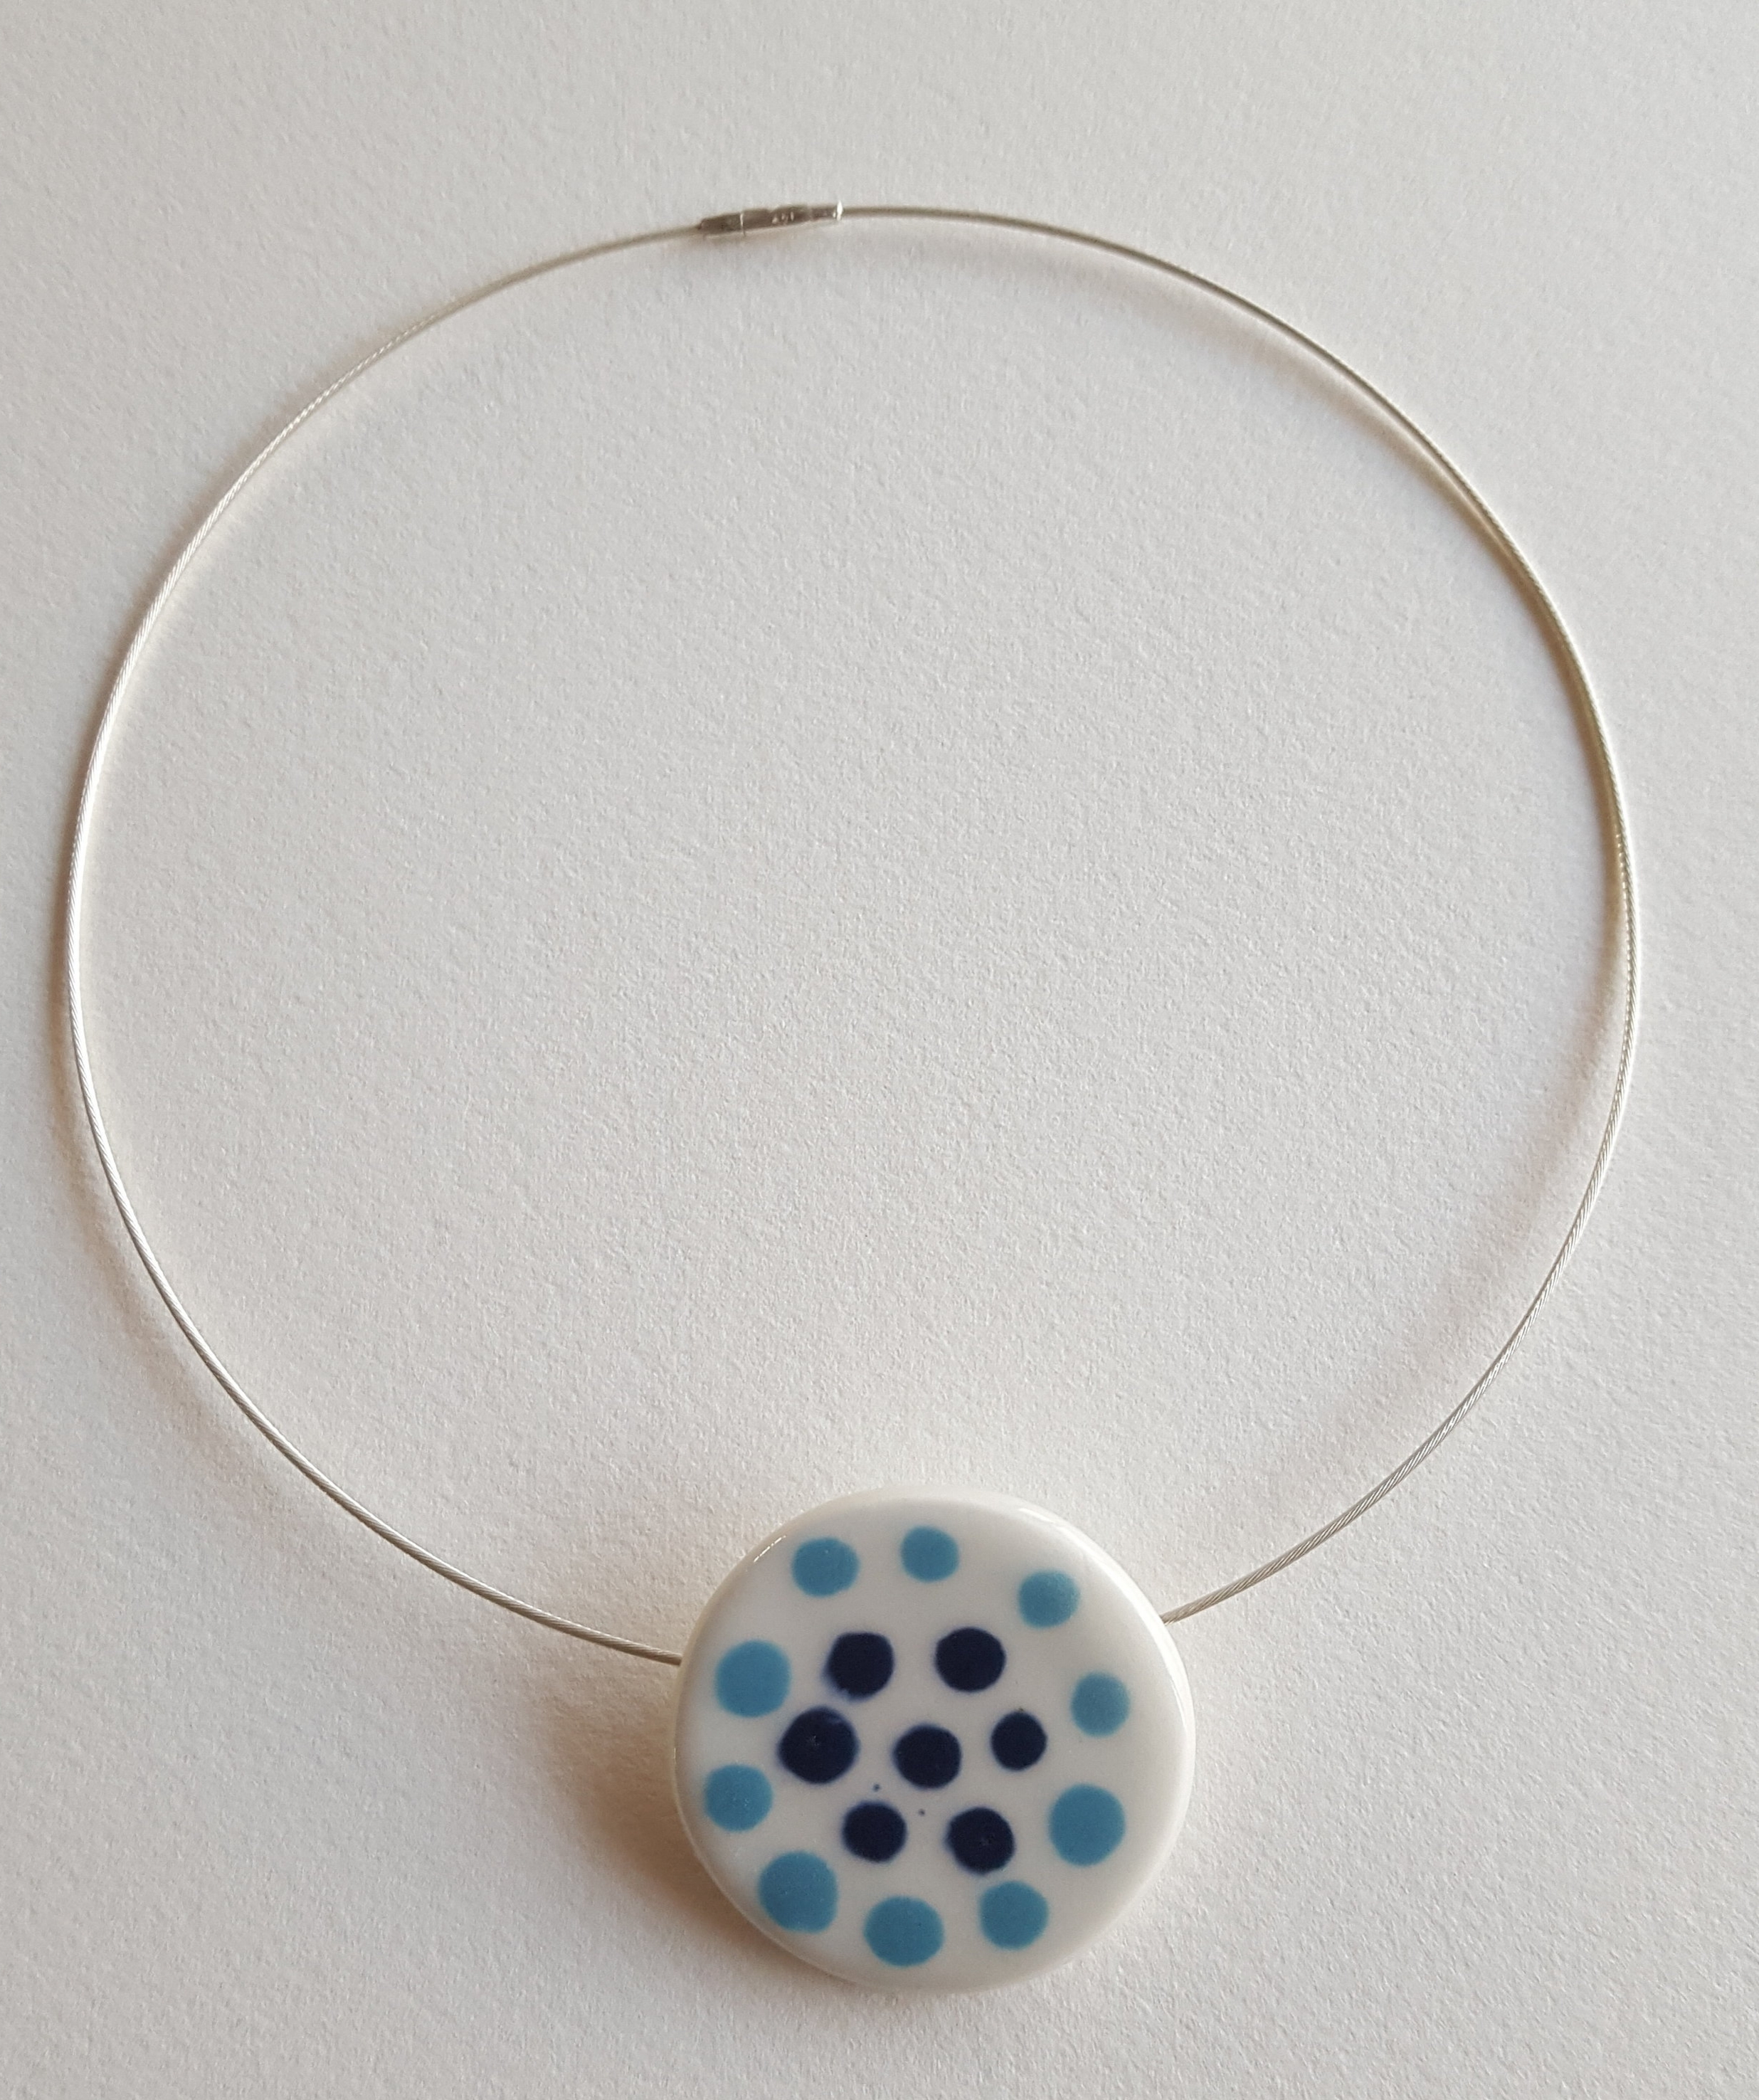 Porcelain Slip decorated disk on Sterling silver neck wire